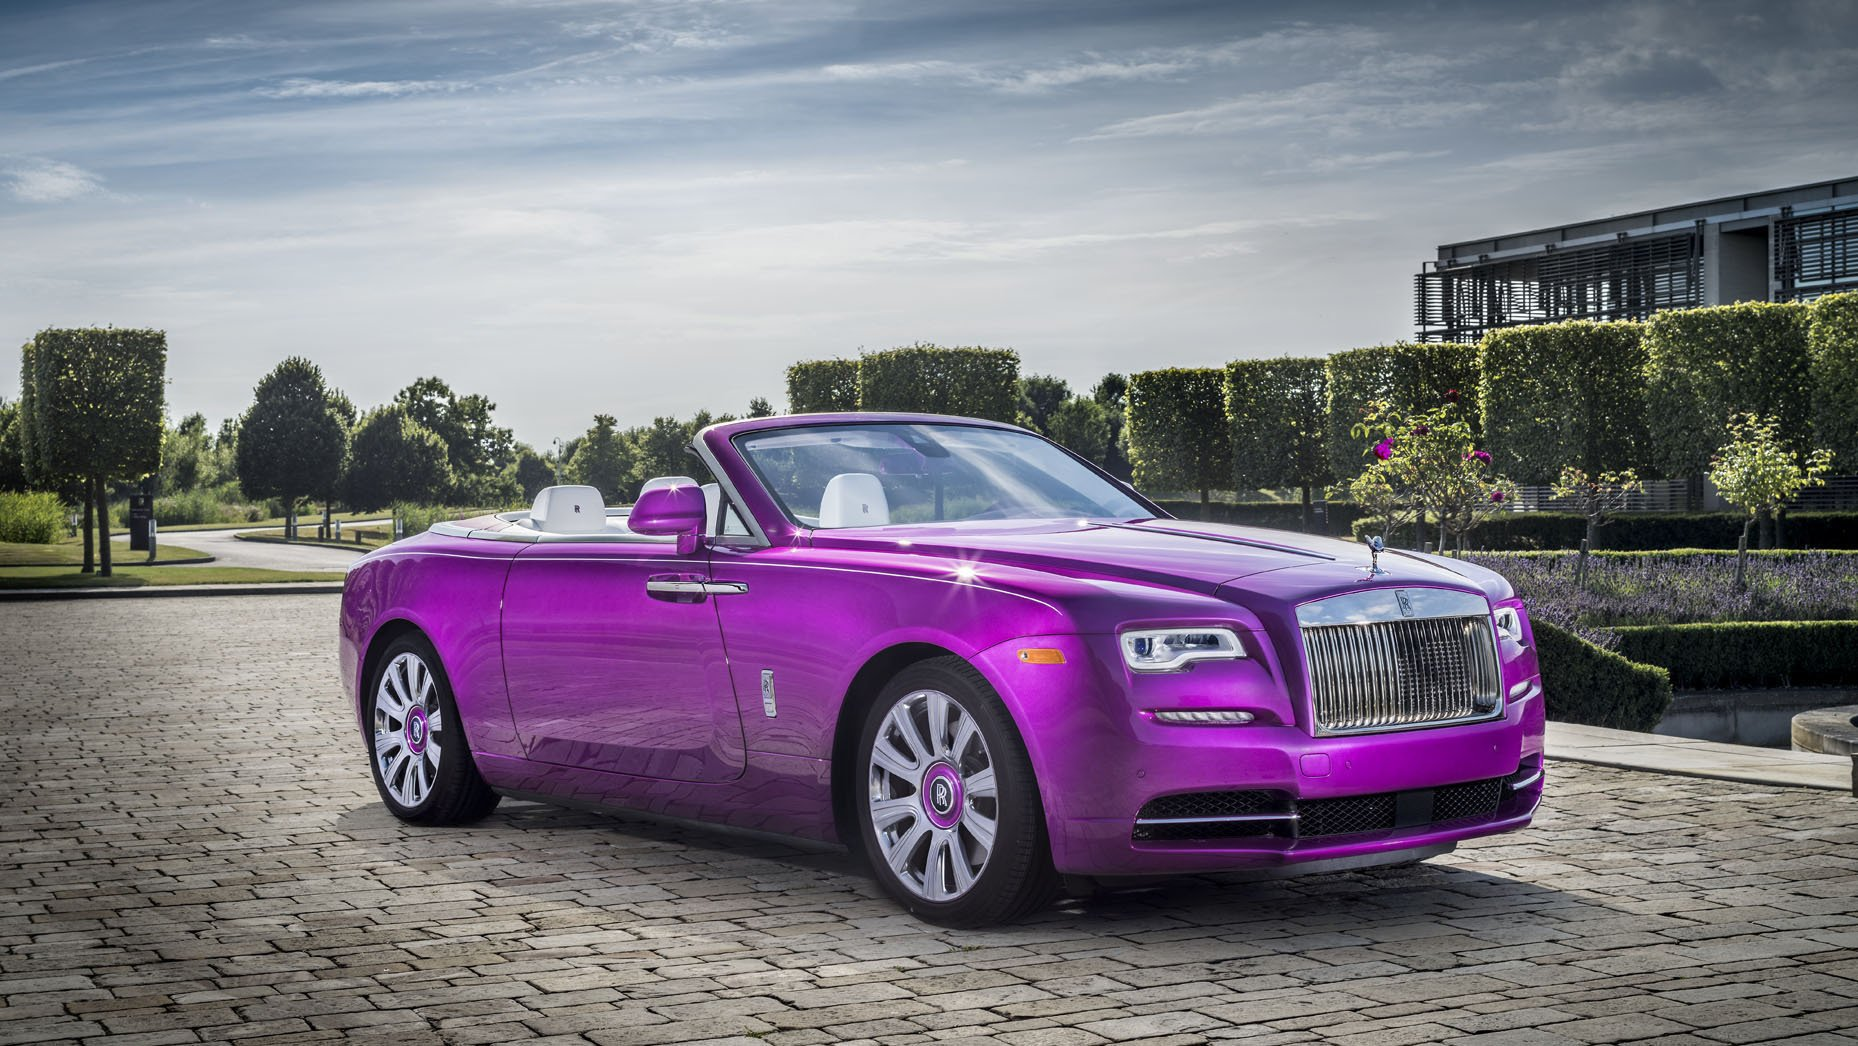 A Rolls Royce Dawn in pink that is perfect for a princess